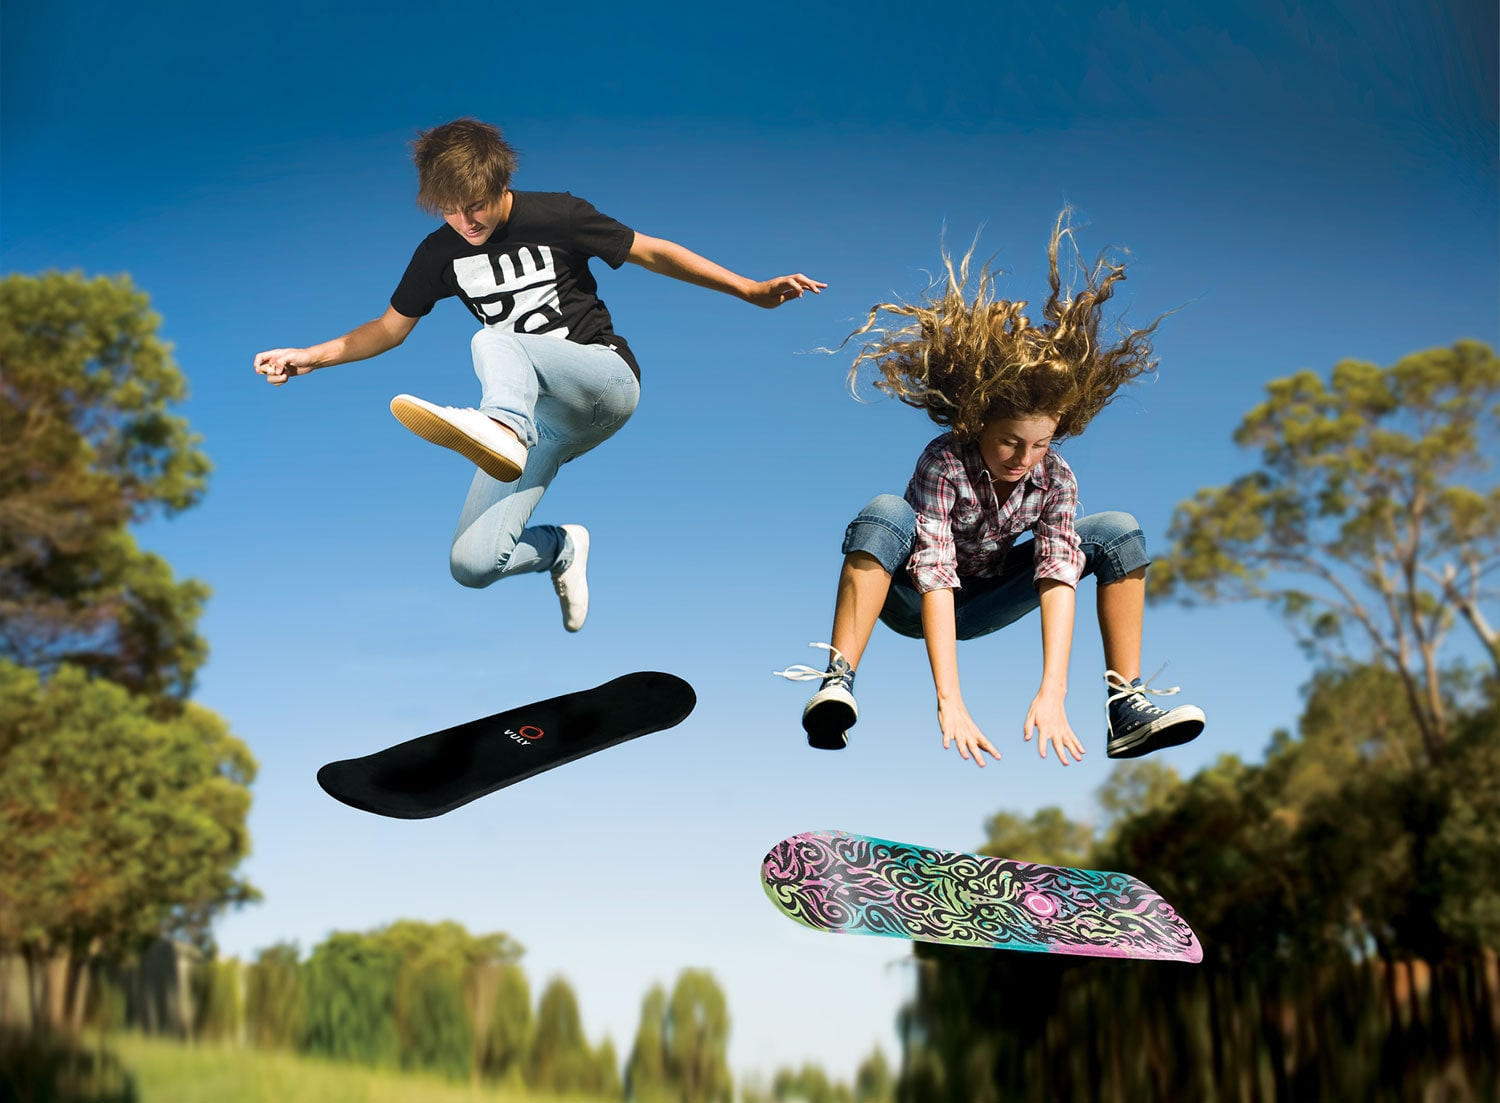 Try out all the skateboarding techniques from the safety of your Vuly trampoline.